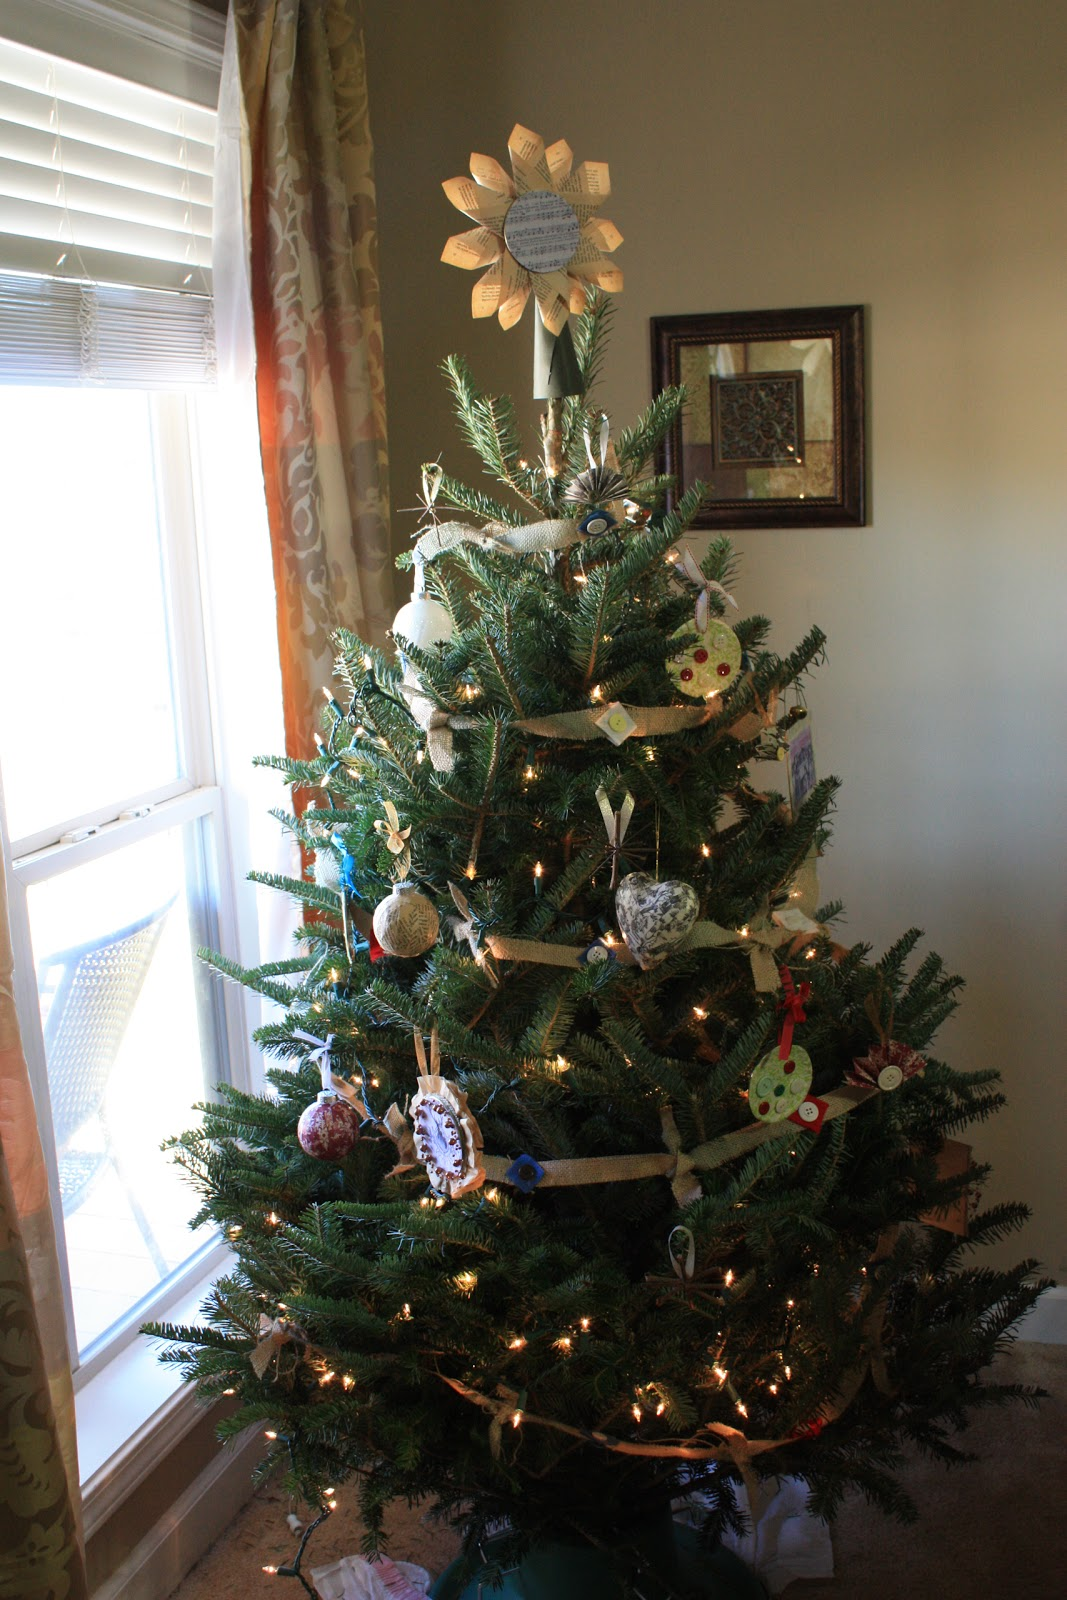 Homestead: Our First Christmas Tree